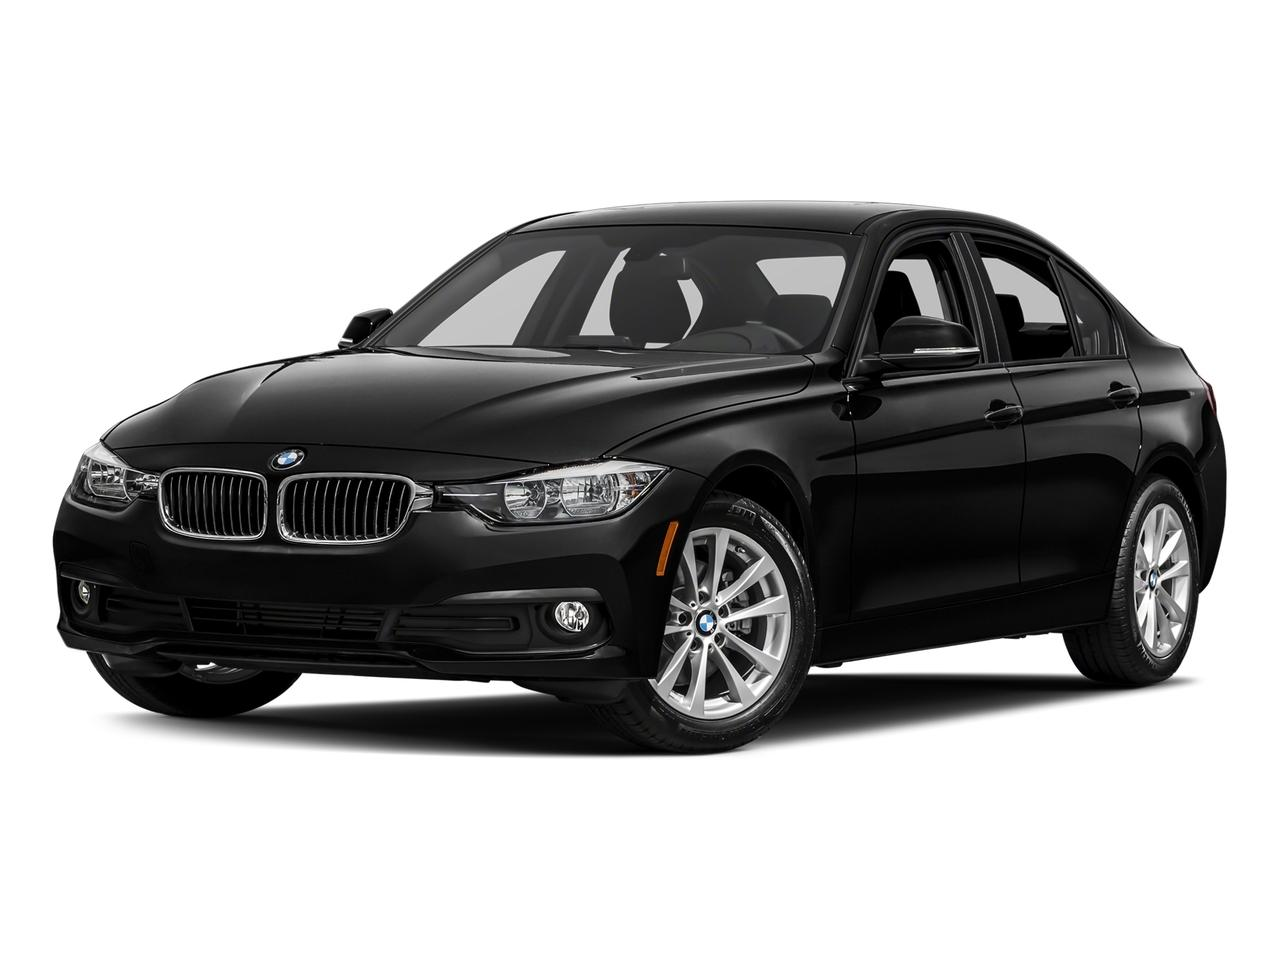 2017 BMW 320i Vehicle Photo in Pleasanton, CA 94588